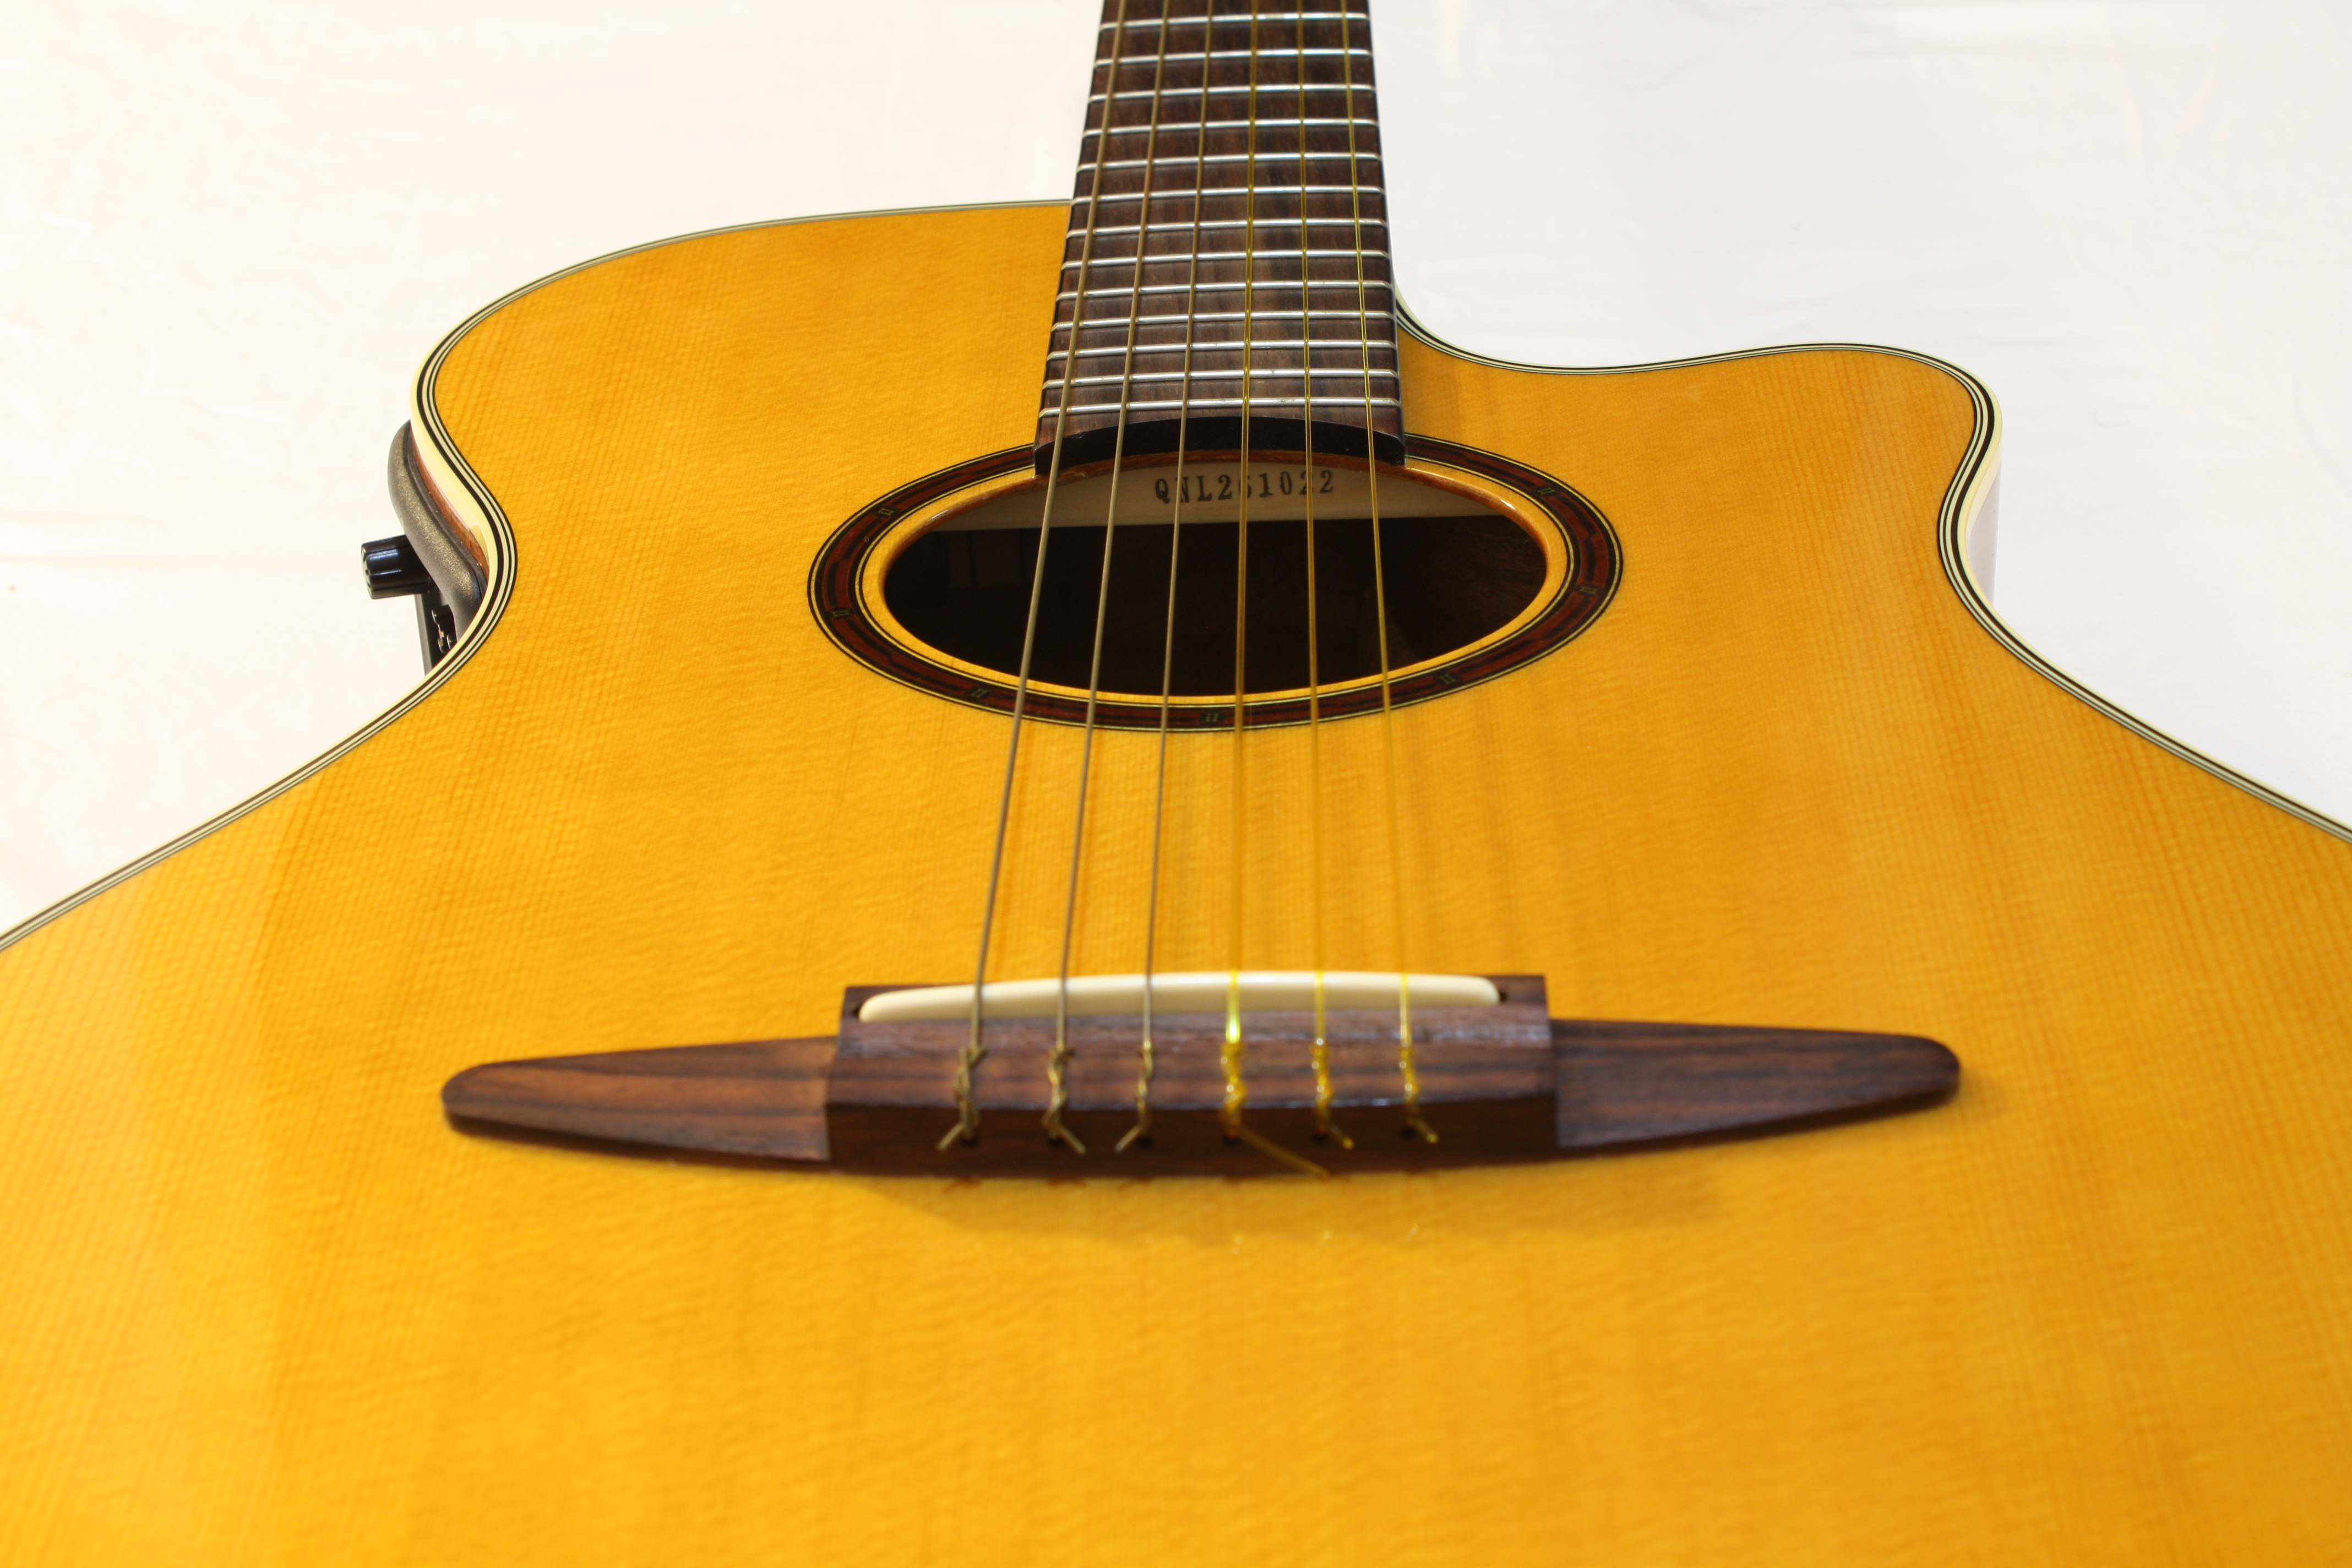 File:Nylon-string electric acoustic guitar view from bottom - Mark's ...